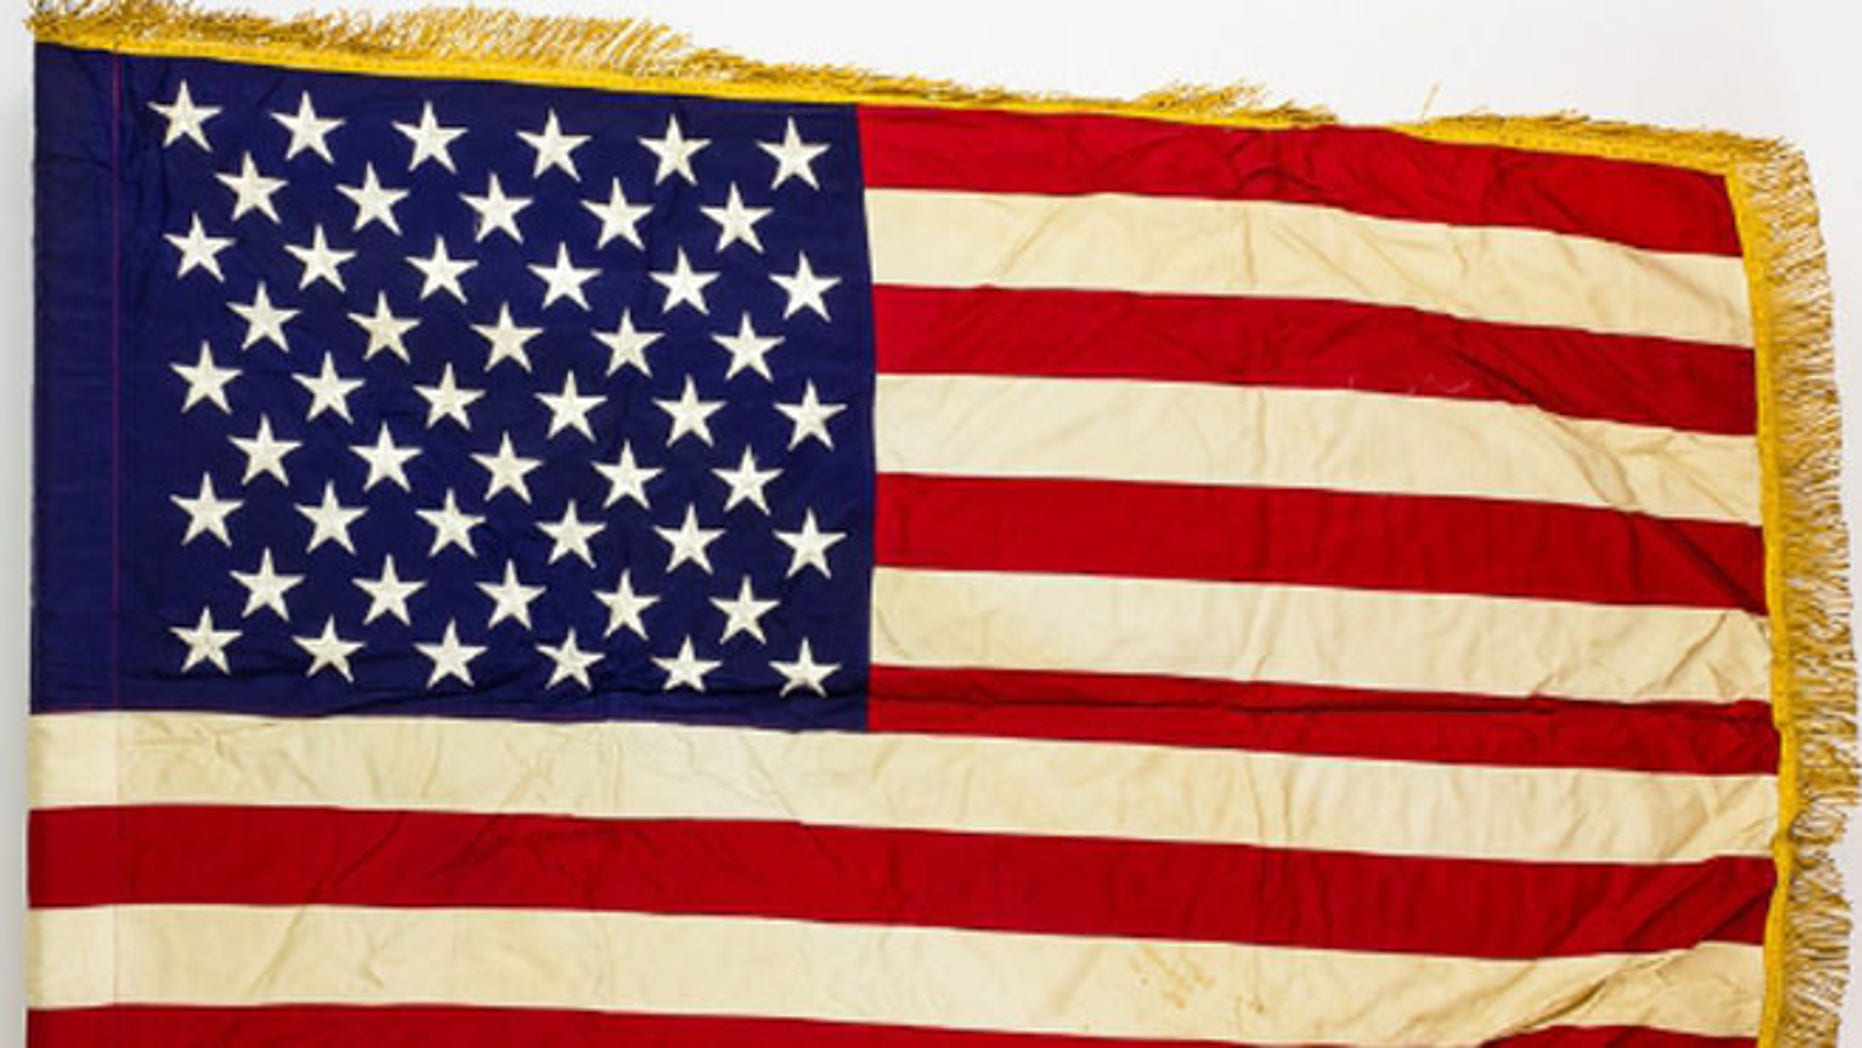 The last American combat flag used in Vietnam, now being sold. (PRNewsFoto/Alexander Historical Auctions L)